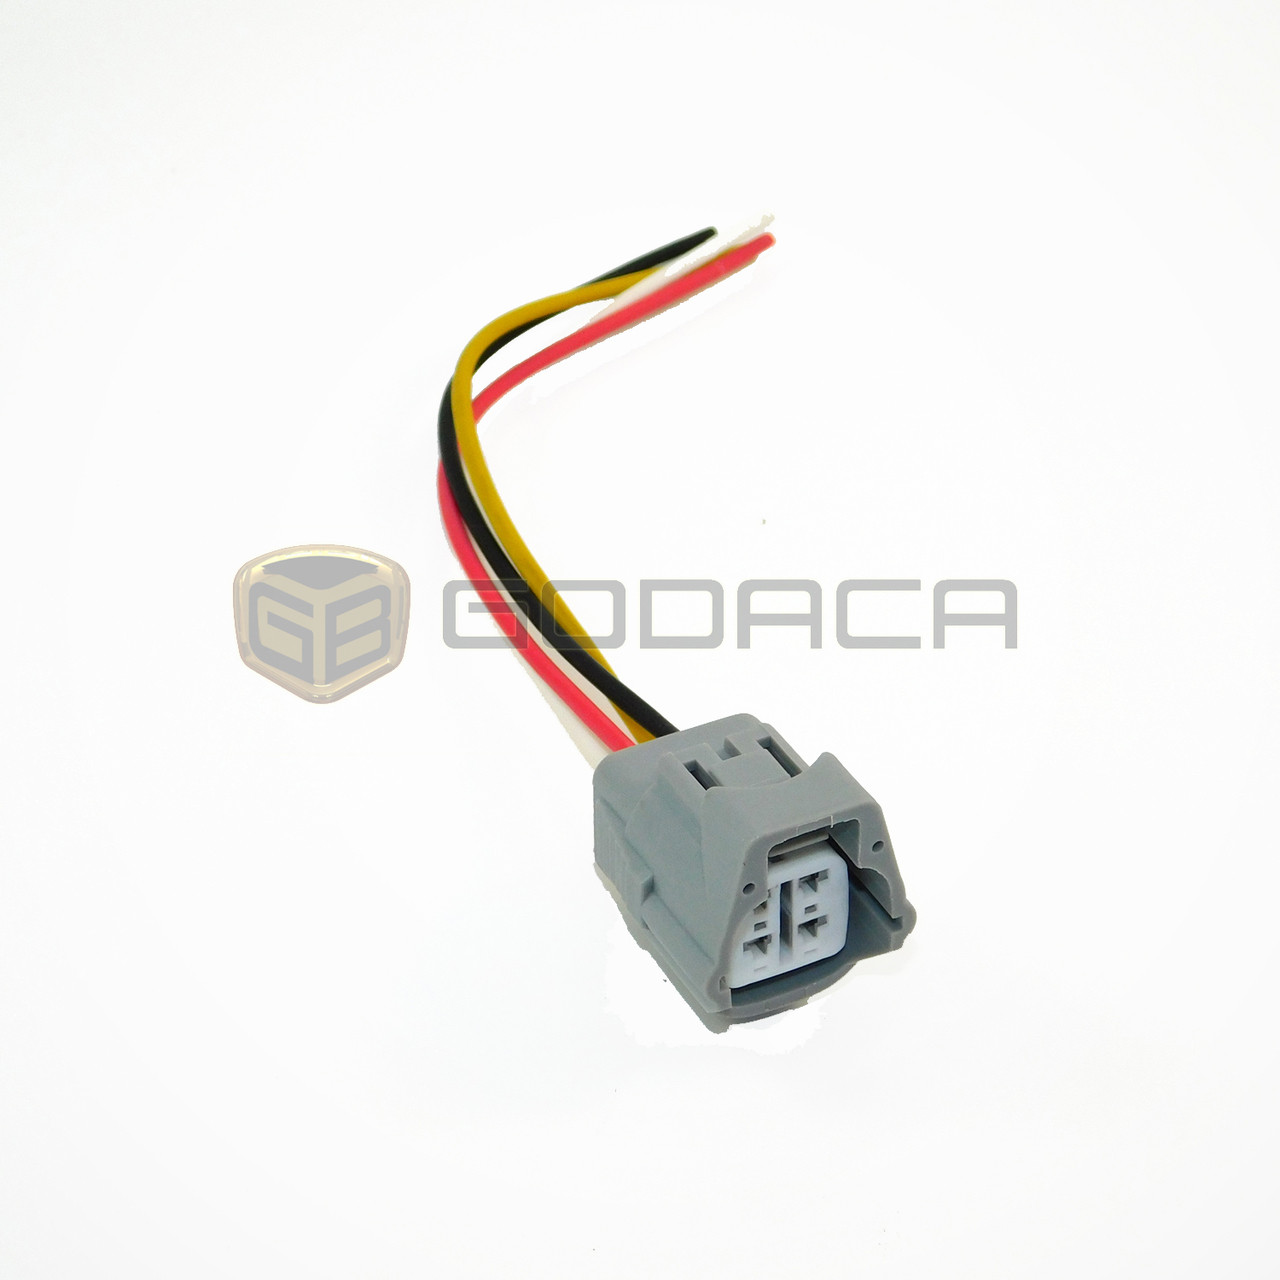 small resolution of 1 x connector 4 way toyota 2jz a c 4p connector pigtail wiring harness sensor godaca llc